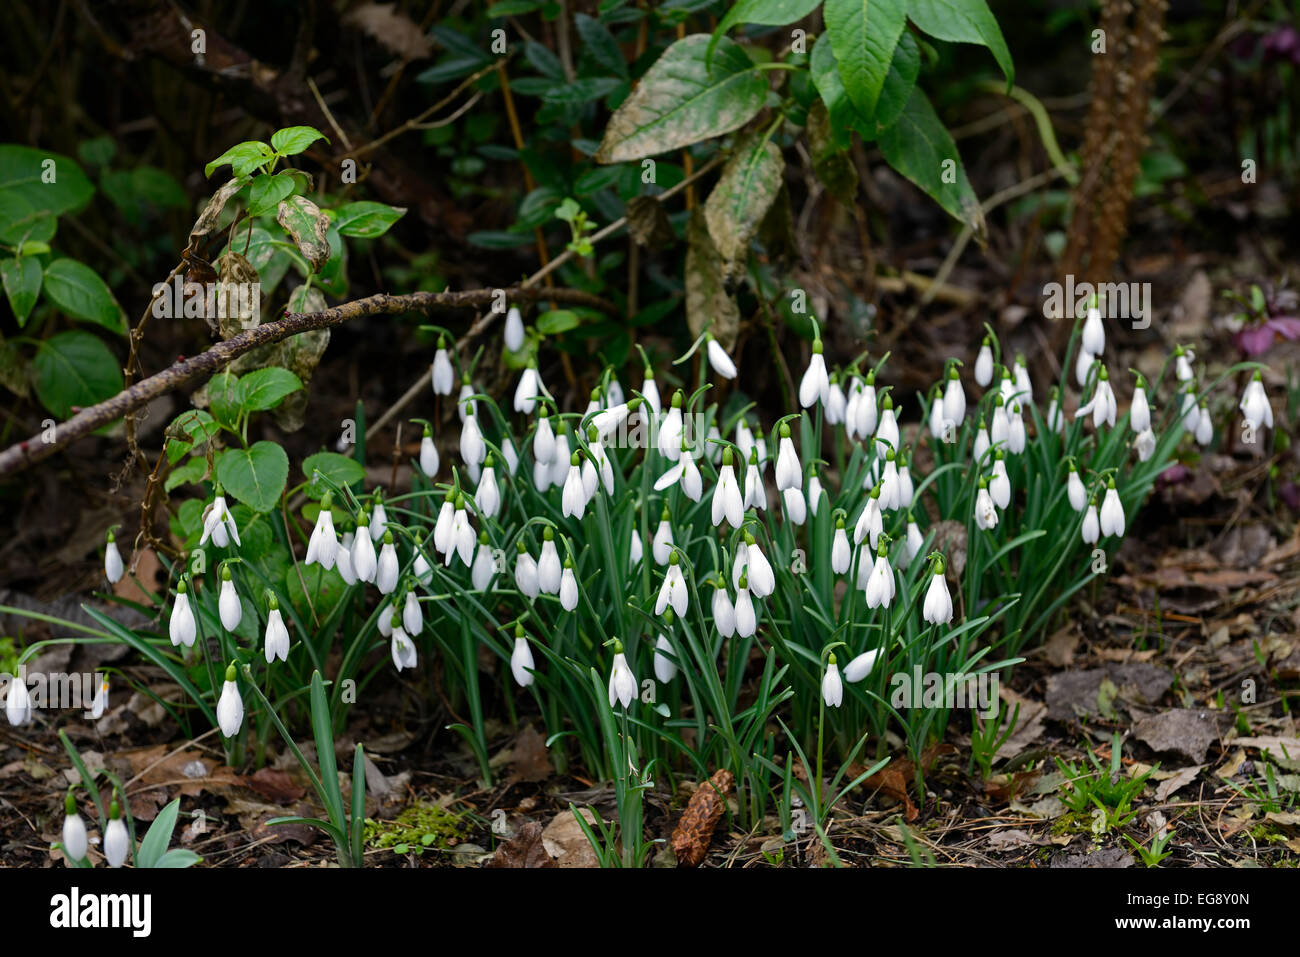 Galanthus cicely hall white flowers green markings flower bulbs galanthus cicely hall white flowers green markings flower bulbs snowdrops spring flowering clump clumps rm floral mightylinksfo